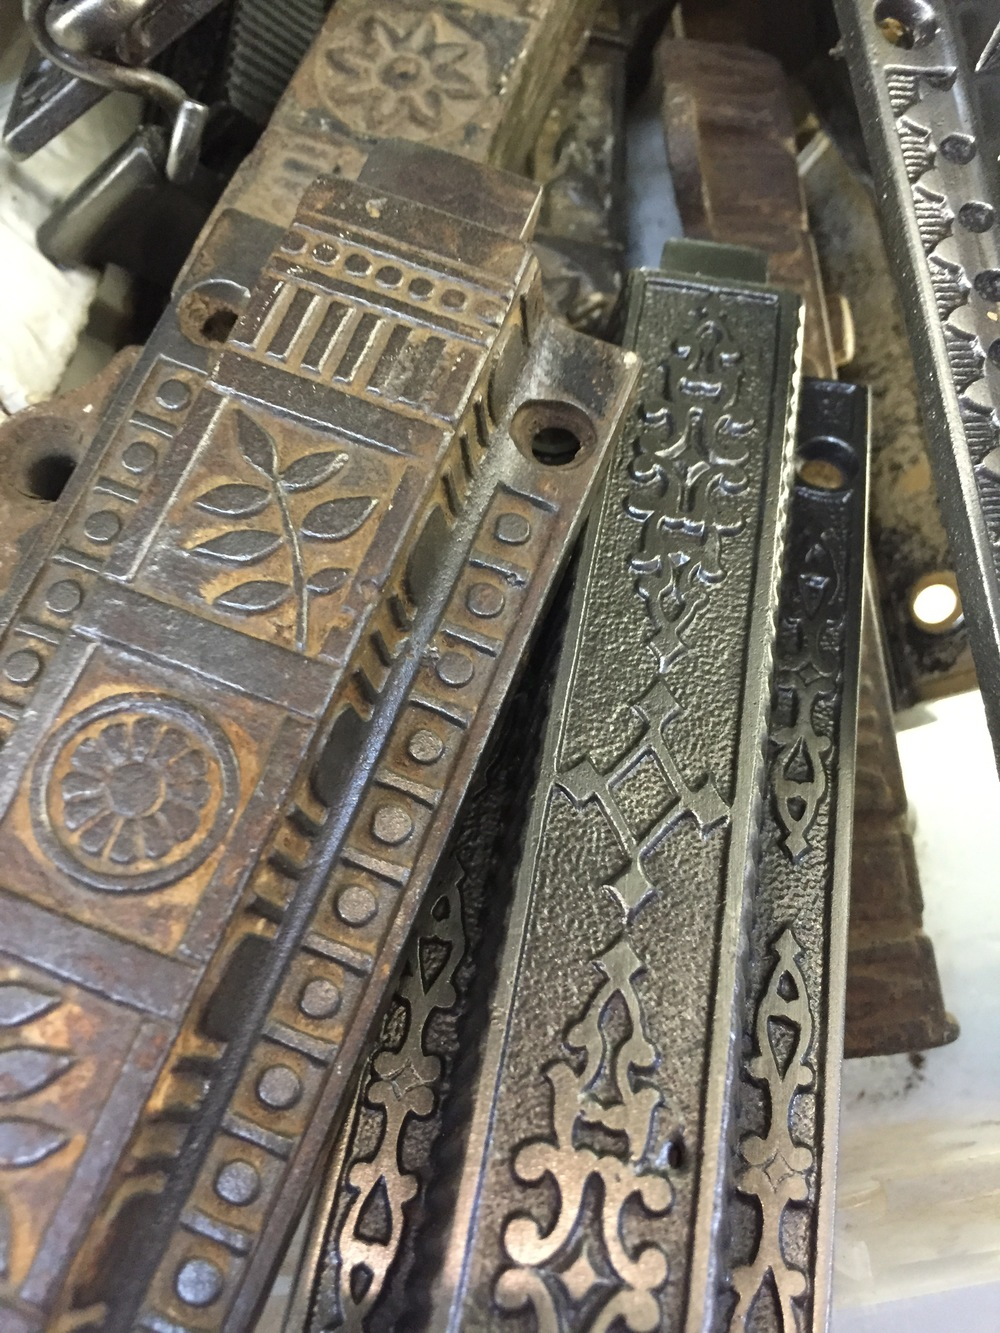 Antique Brass Door Hardware.JPG